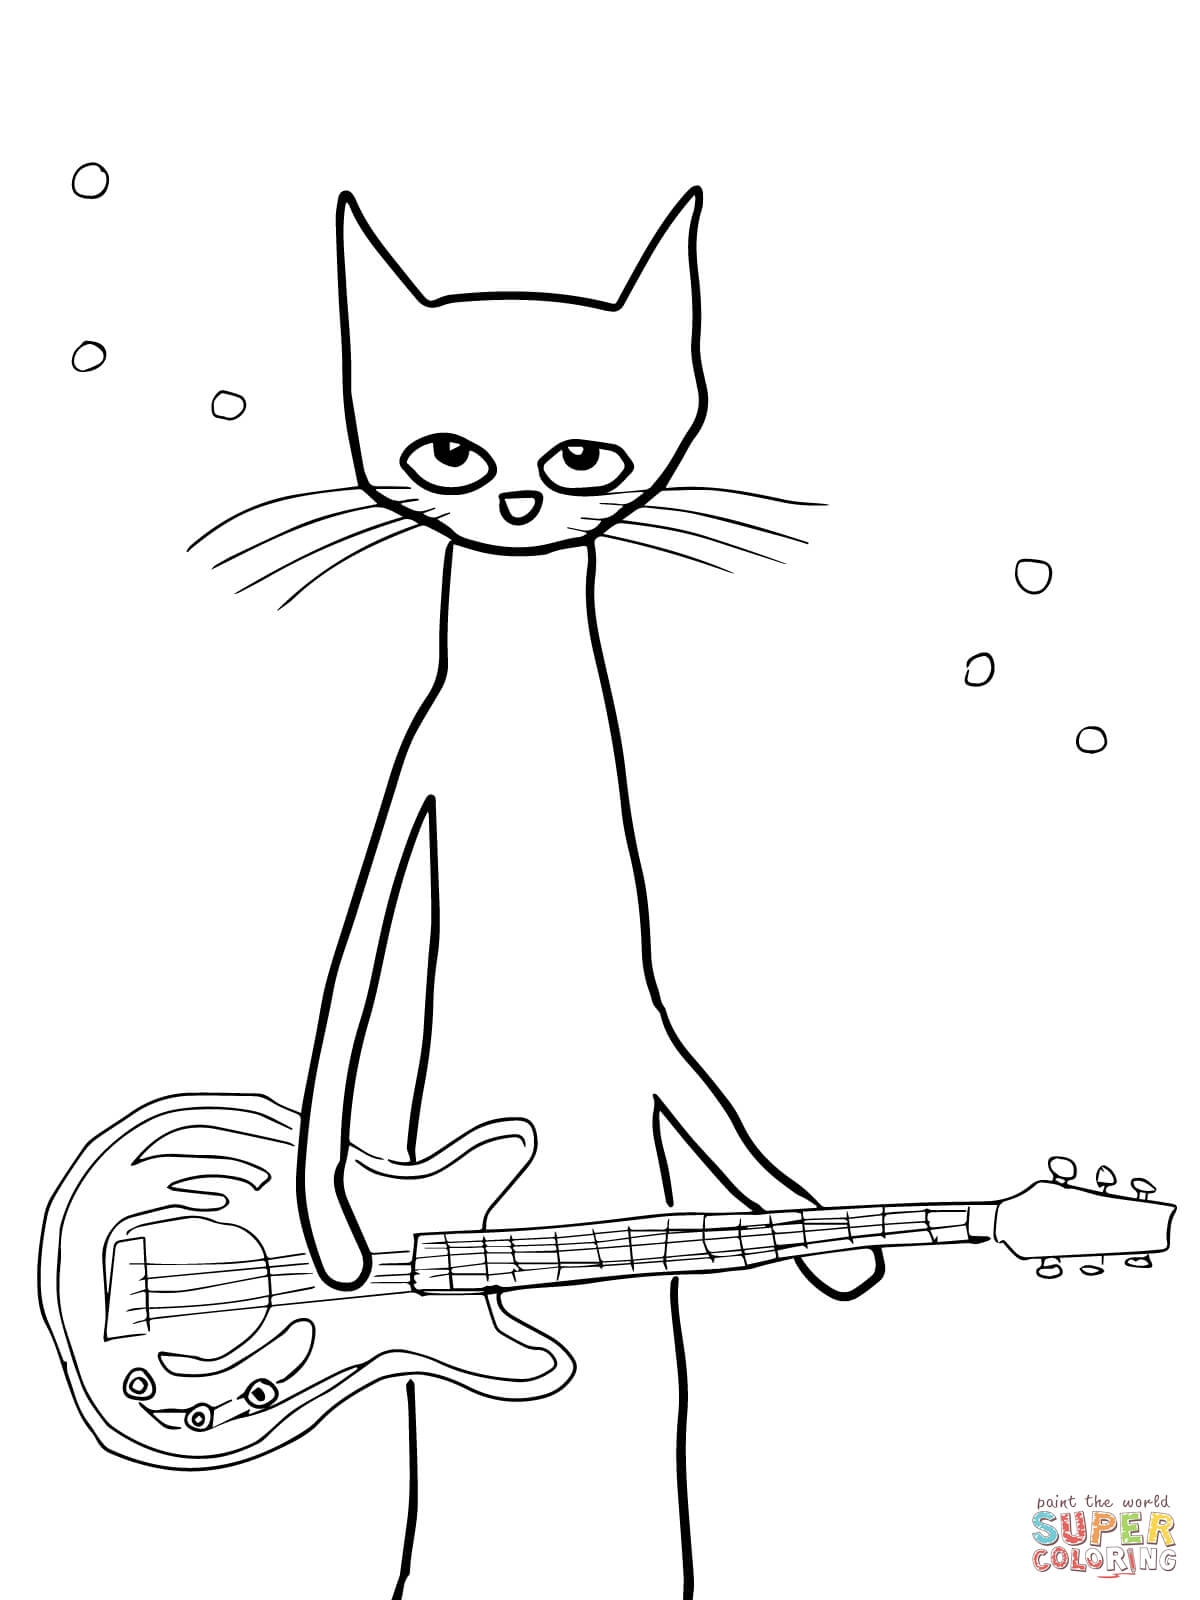 fiddle coloring pages - photo#36